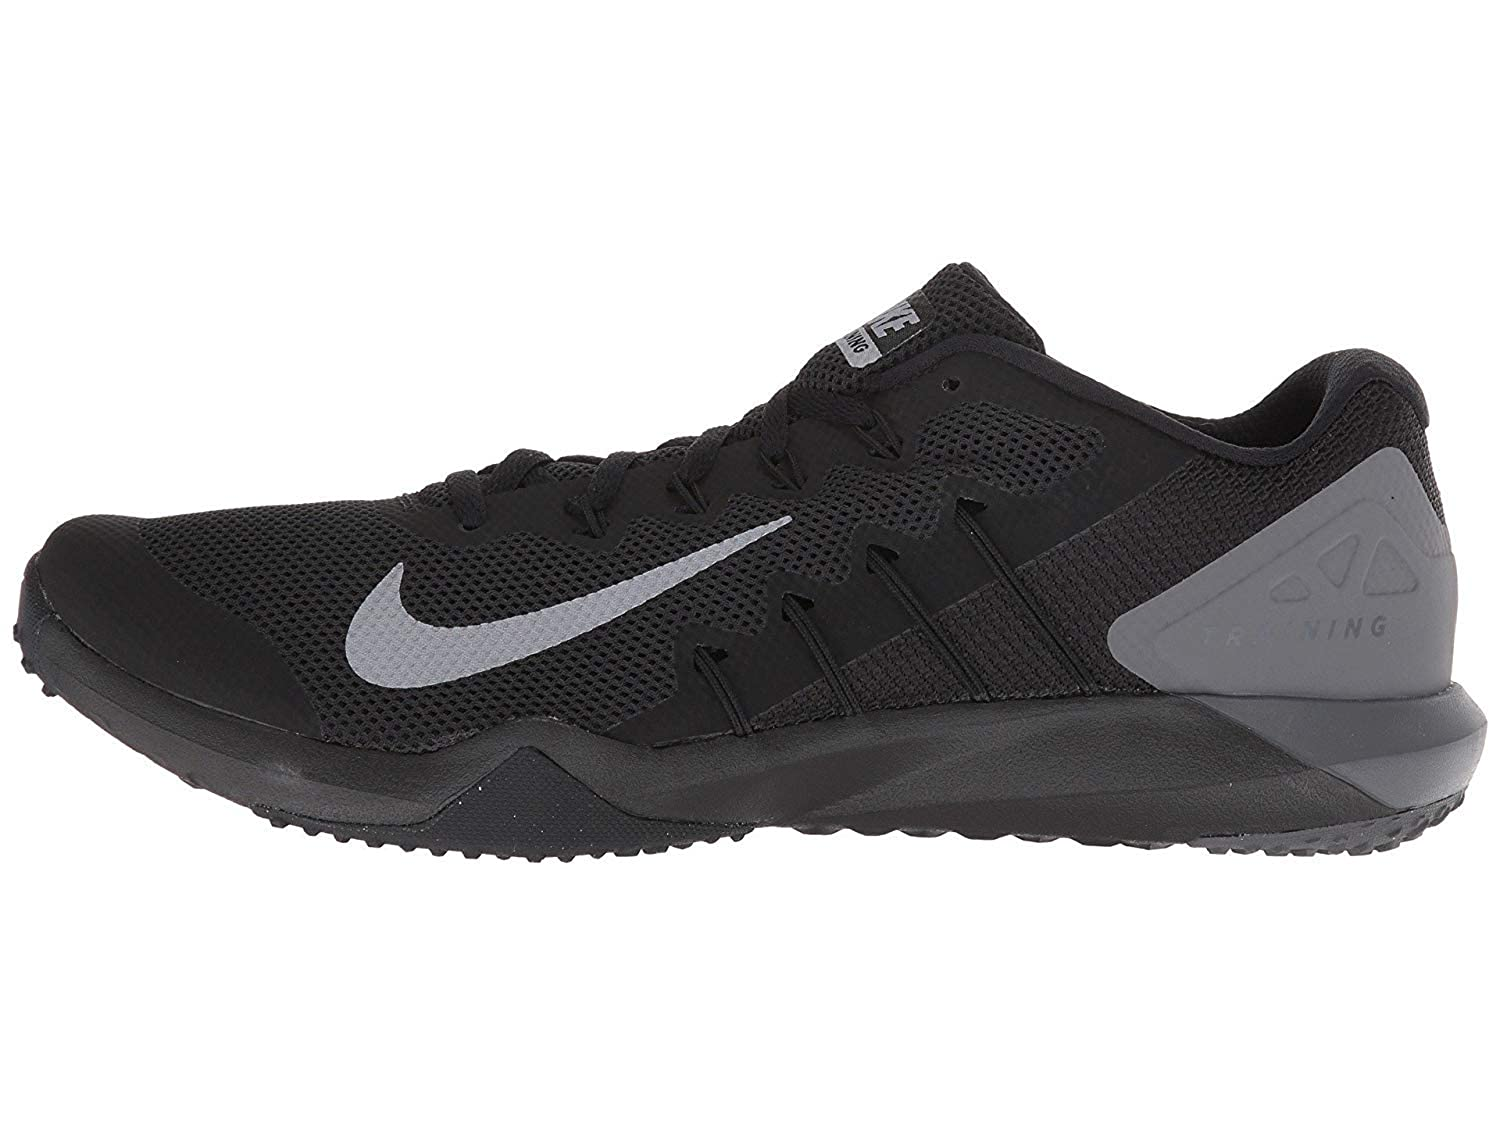 dd6712fdc6fd99 Nike Men s Retaliation TR 2 Black Grey Training Shoes (AA7063-003)  Buy  Online at Low Prices in India - Amazon.in